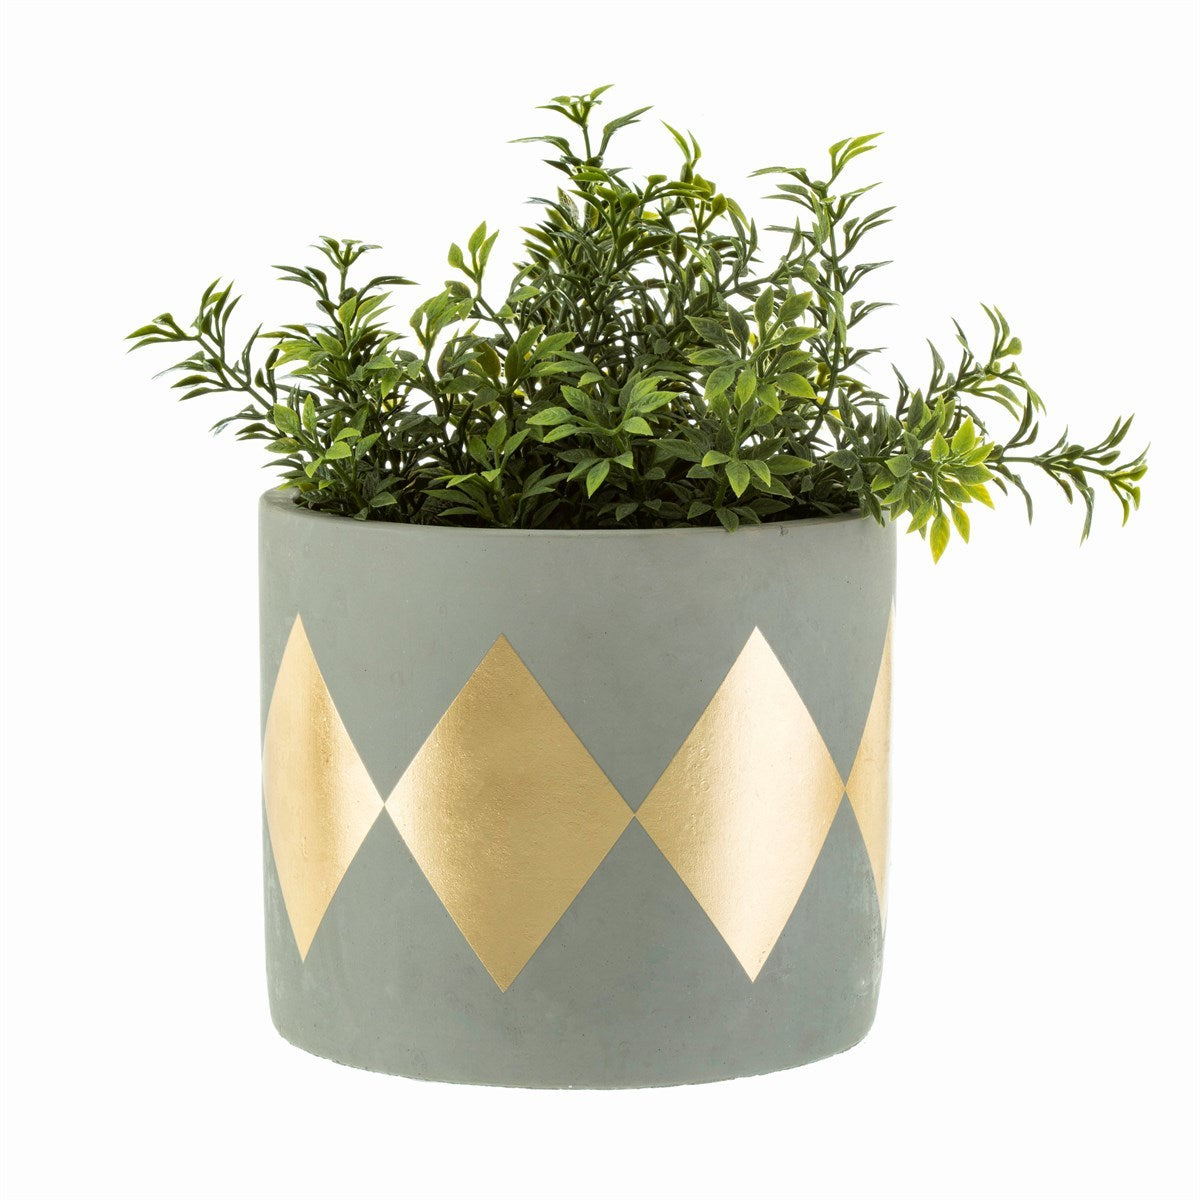 Sass & Belle: Cement Planter